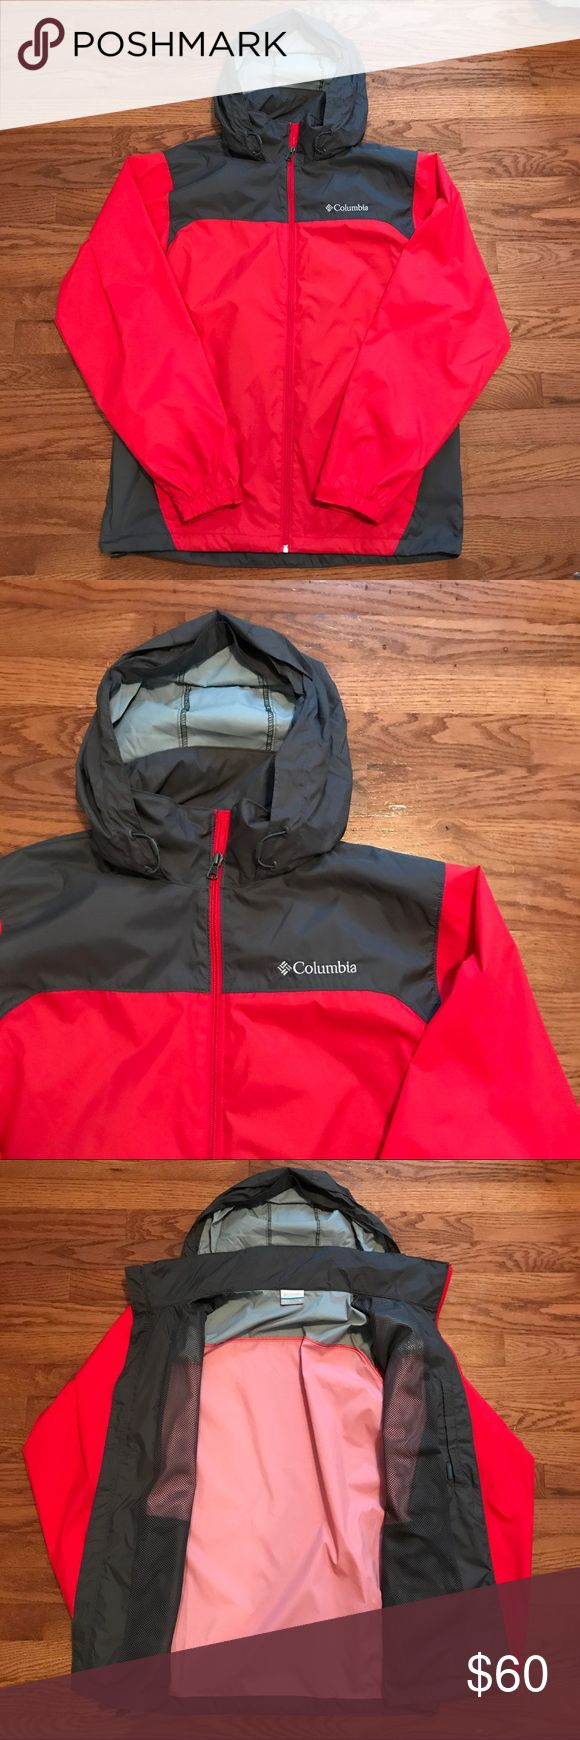 Men's Columbia Rain Jacket NWOT!! Great condition men's rain jacket from Columbia. It is red and gray with a full zipper. The hood packs away into the collar for when it's not needed. Great item!! Columbia Jackets & Coats Raincoats